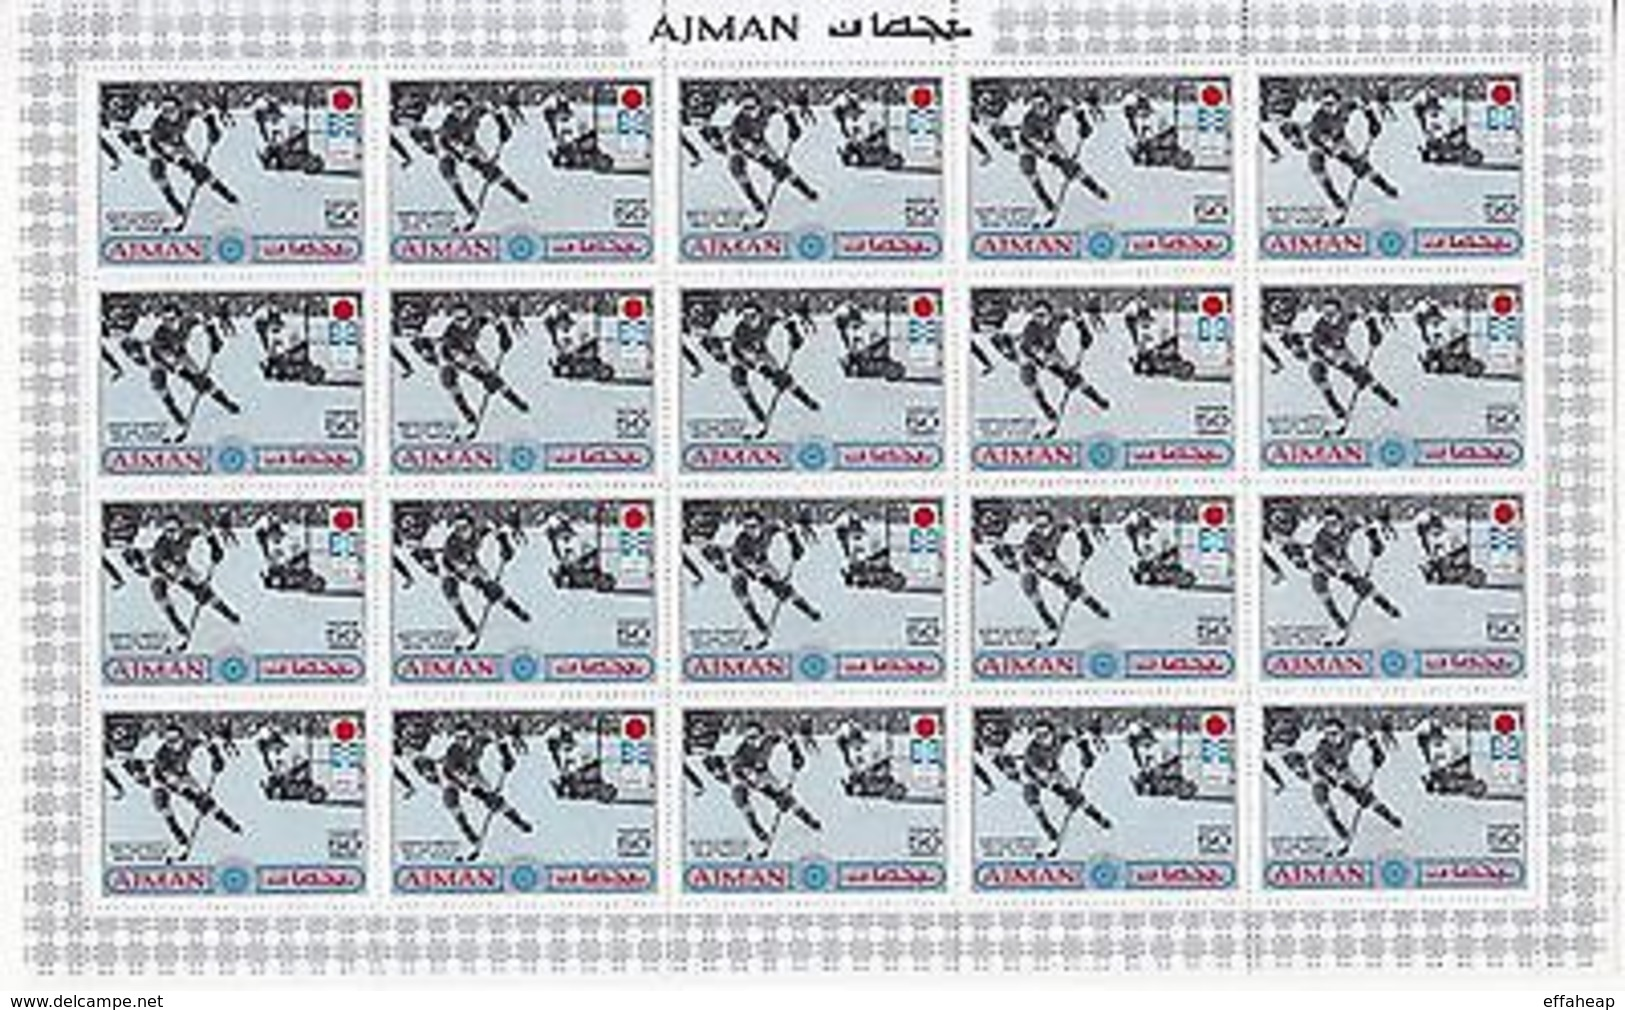 Ajman: Winter Olympics, Three Mint Sheet Of 20 Stamps - Stamps